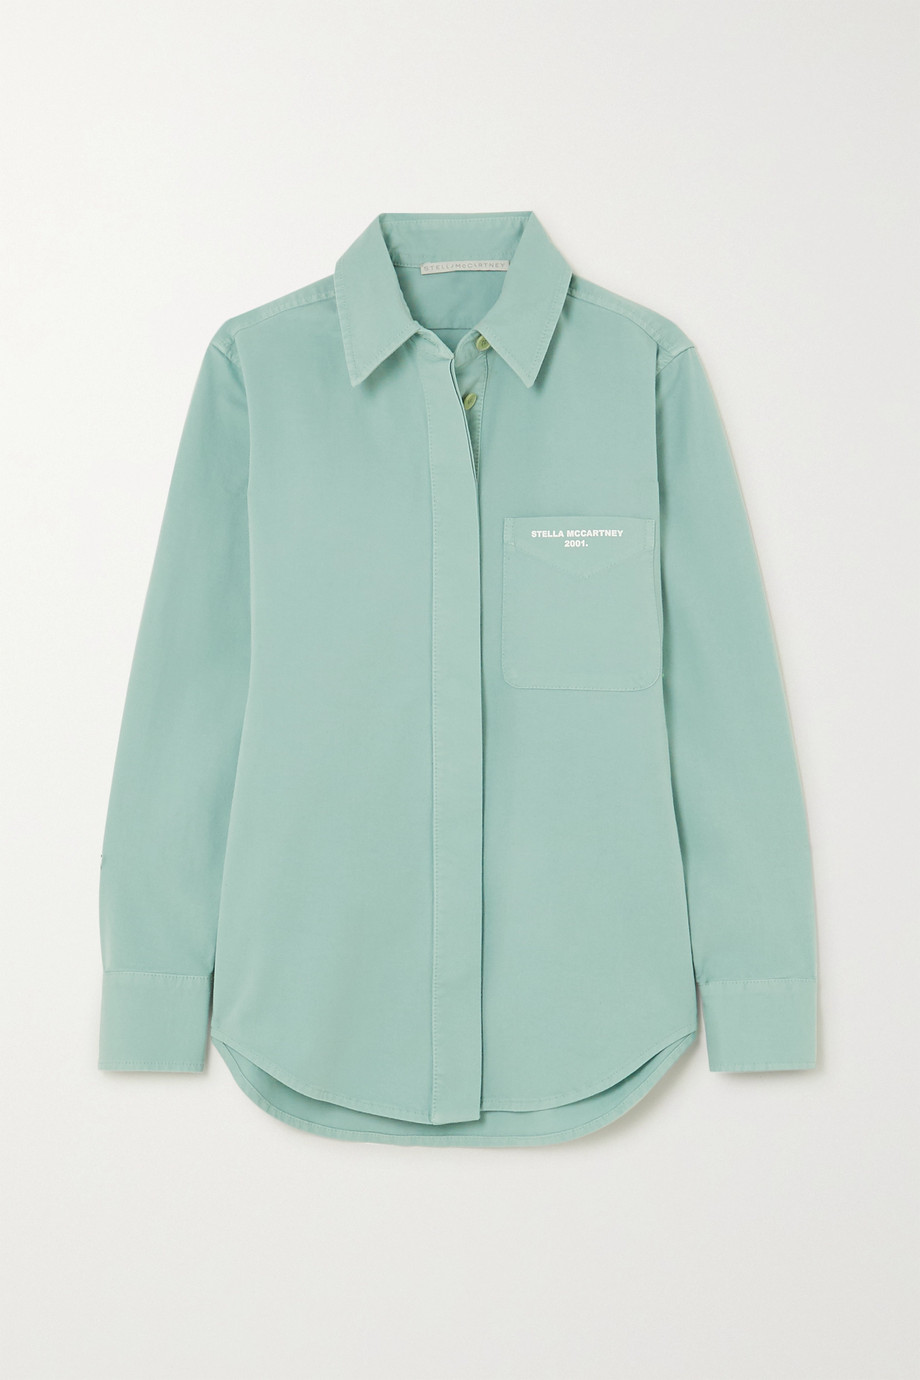 Stella McCartney Printed stretch-cotton twill shirt